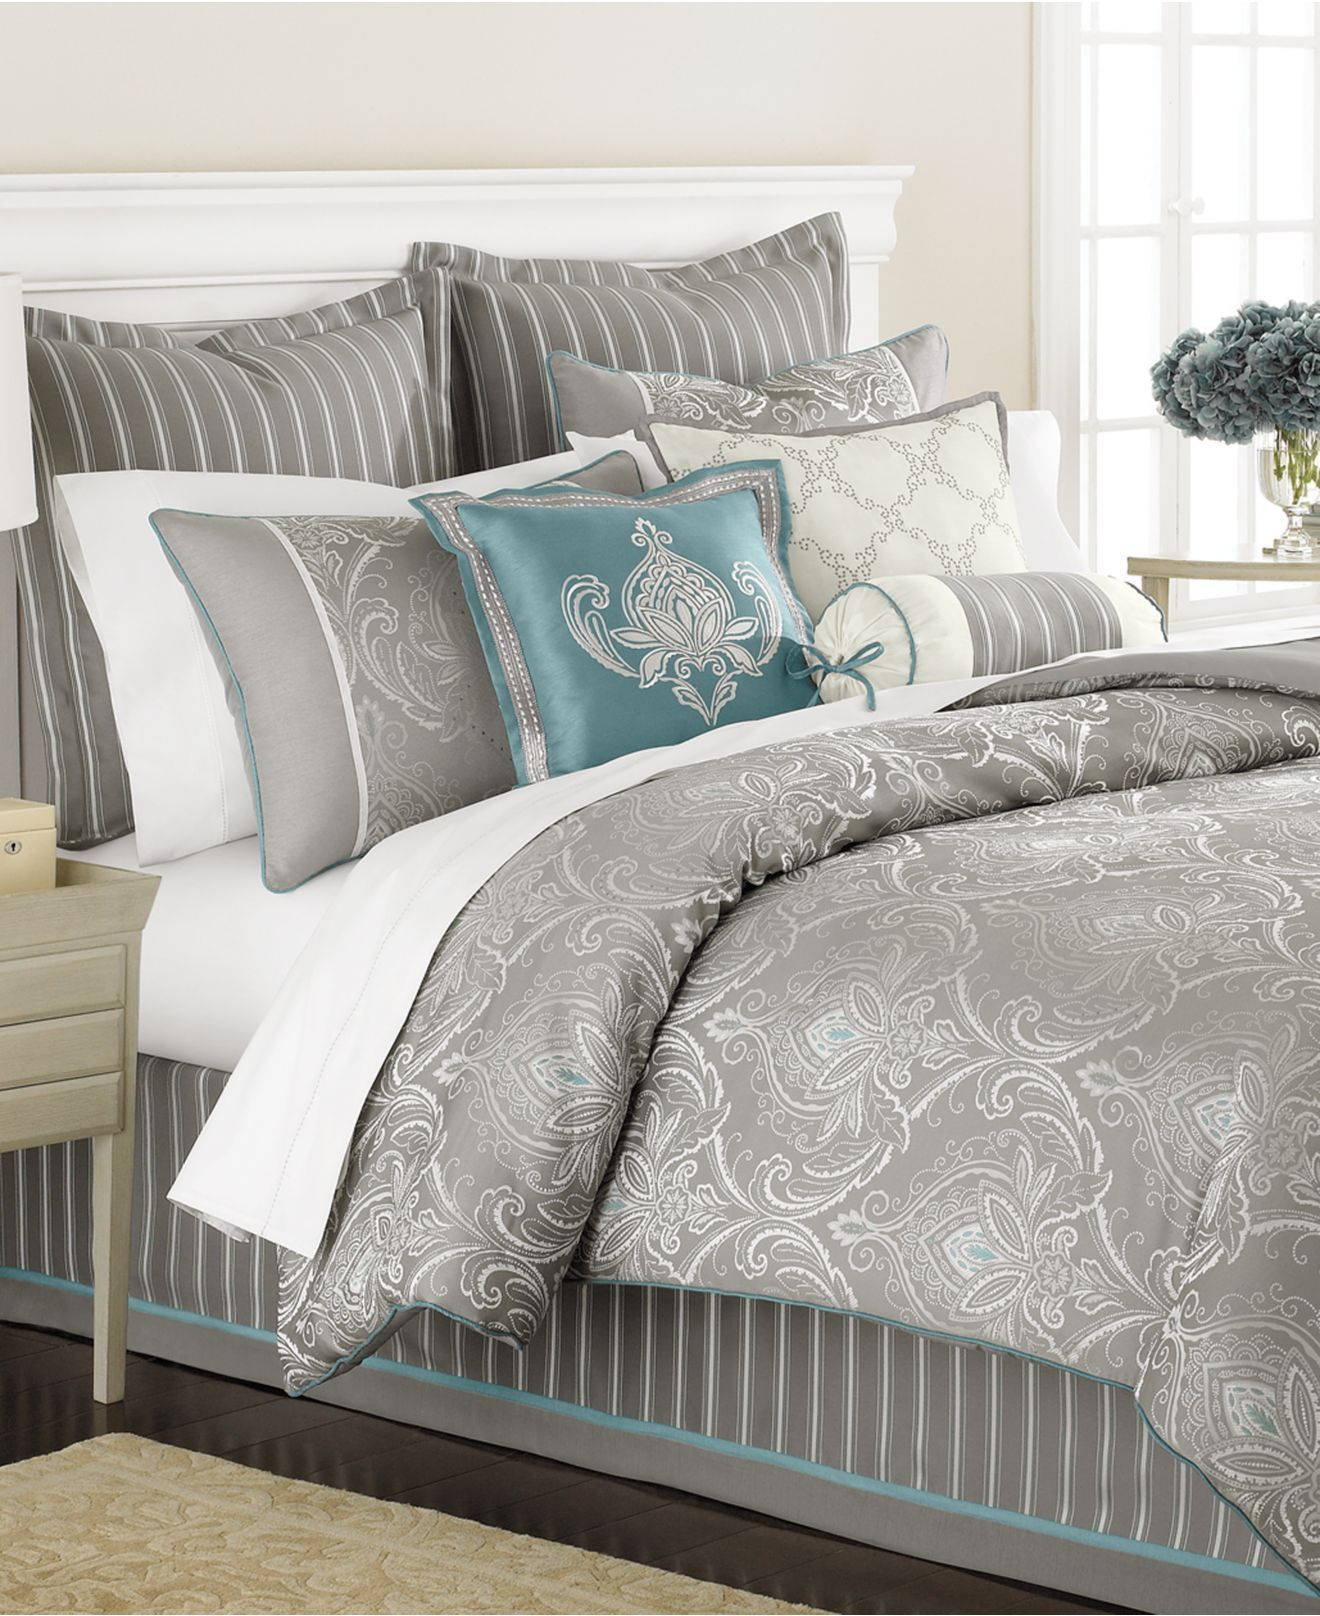 clearance awesome silver bed size from bedding king set spotlats sets comforter overstock